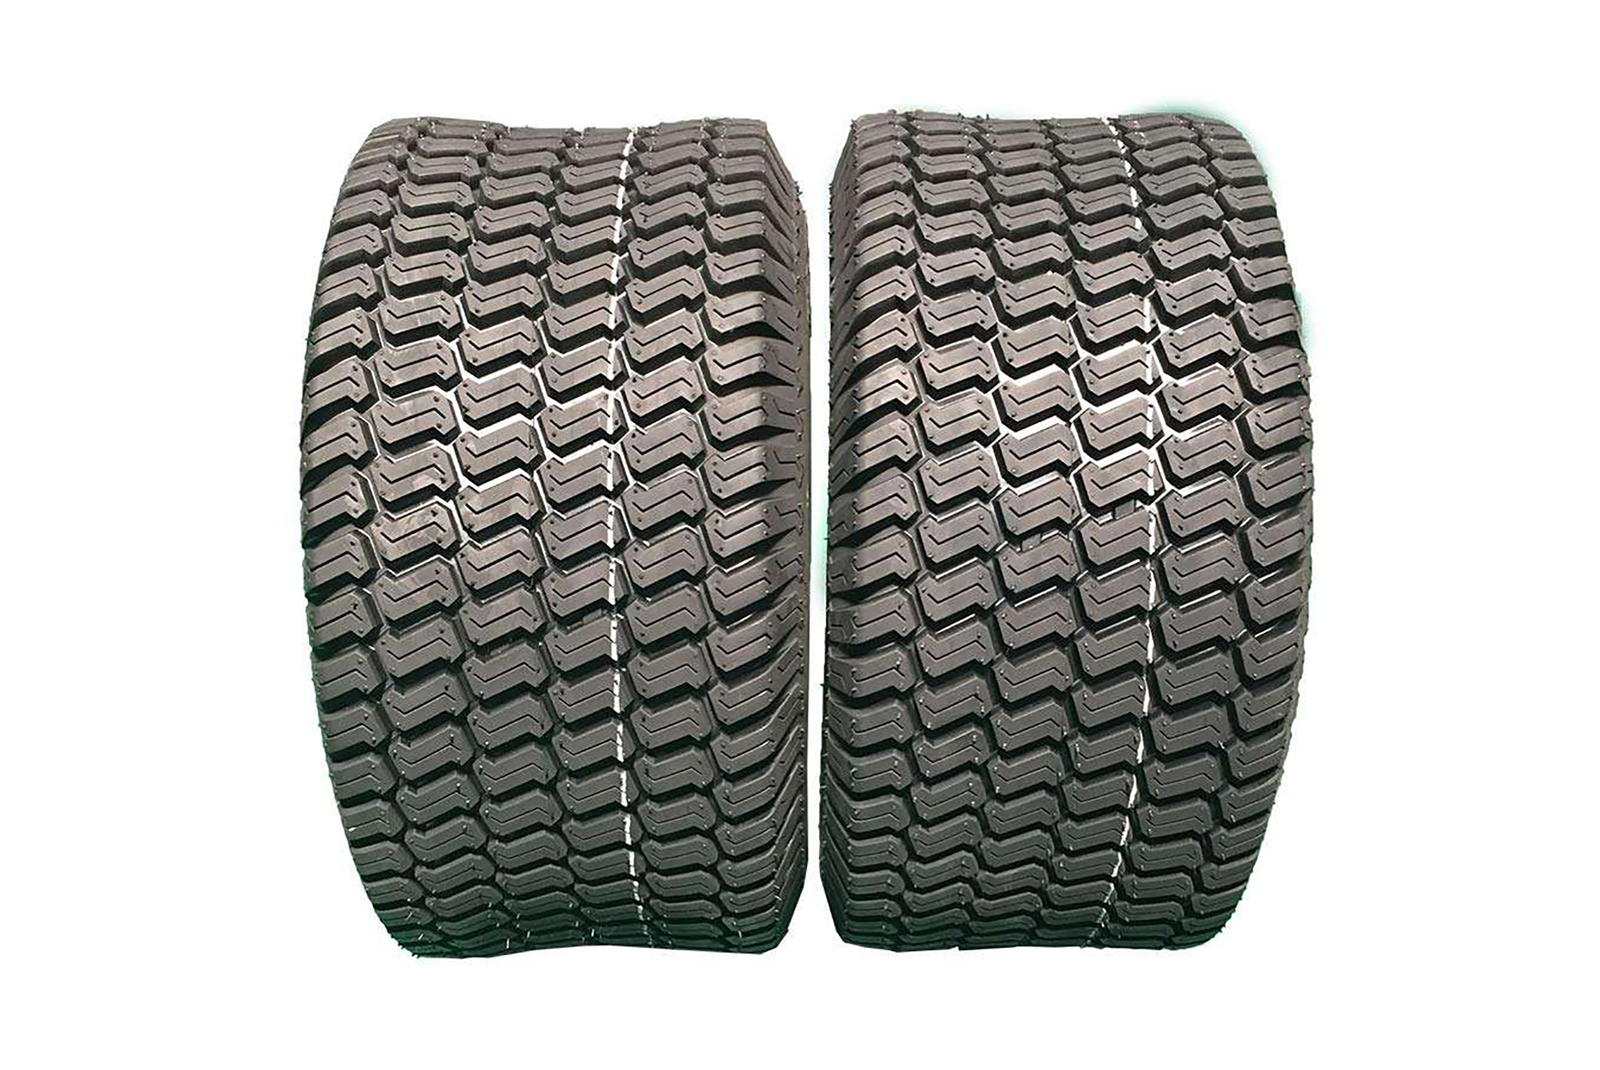 Set of 2 riding mower tubeless 4 ply tires 18x9.50-8